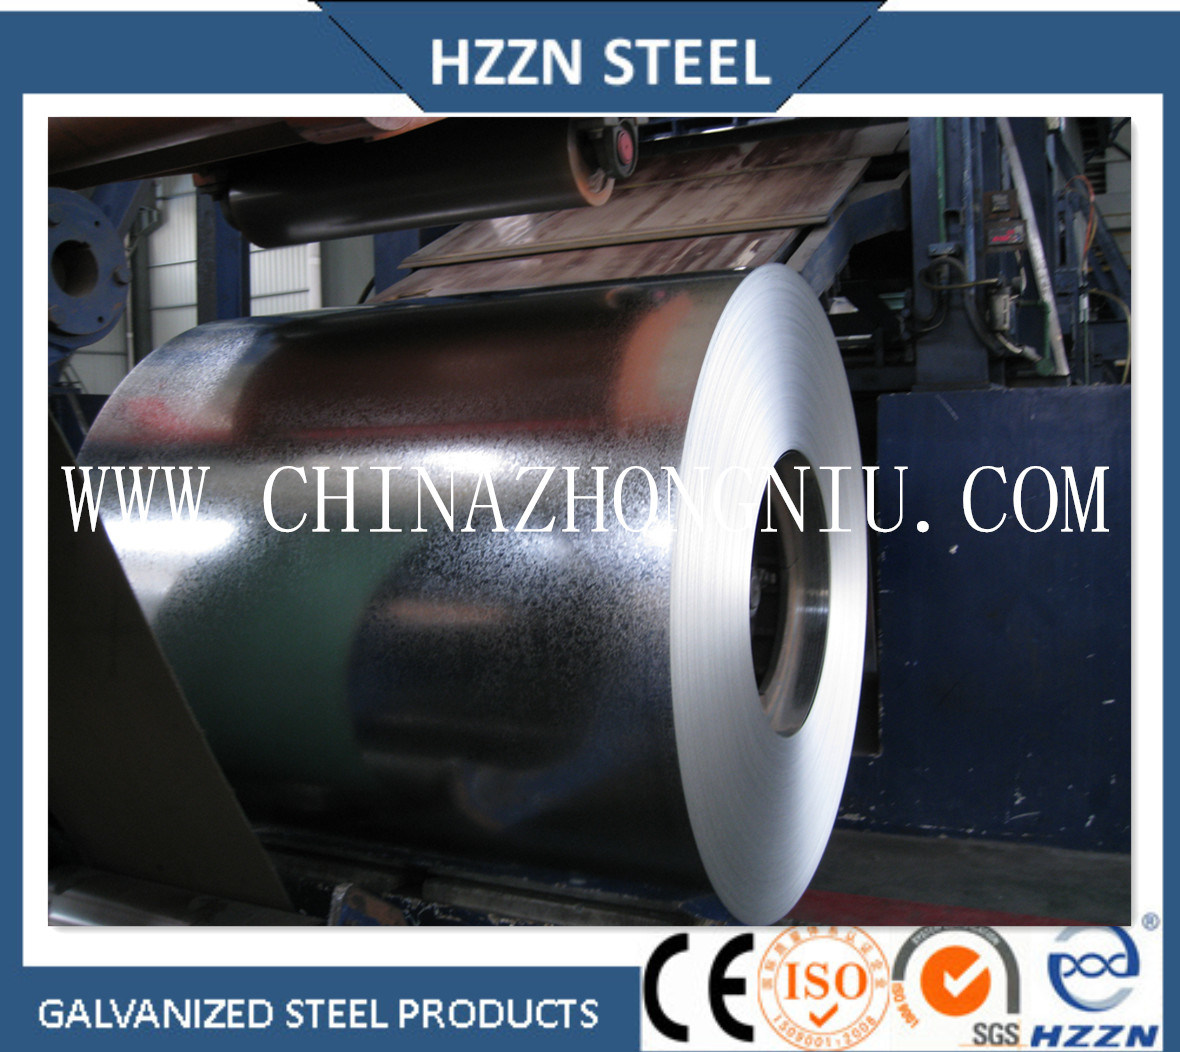 Baosteel (Huangshi) Hot Dipped Galvanized Steel Coil